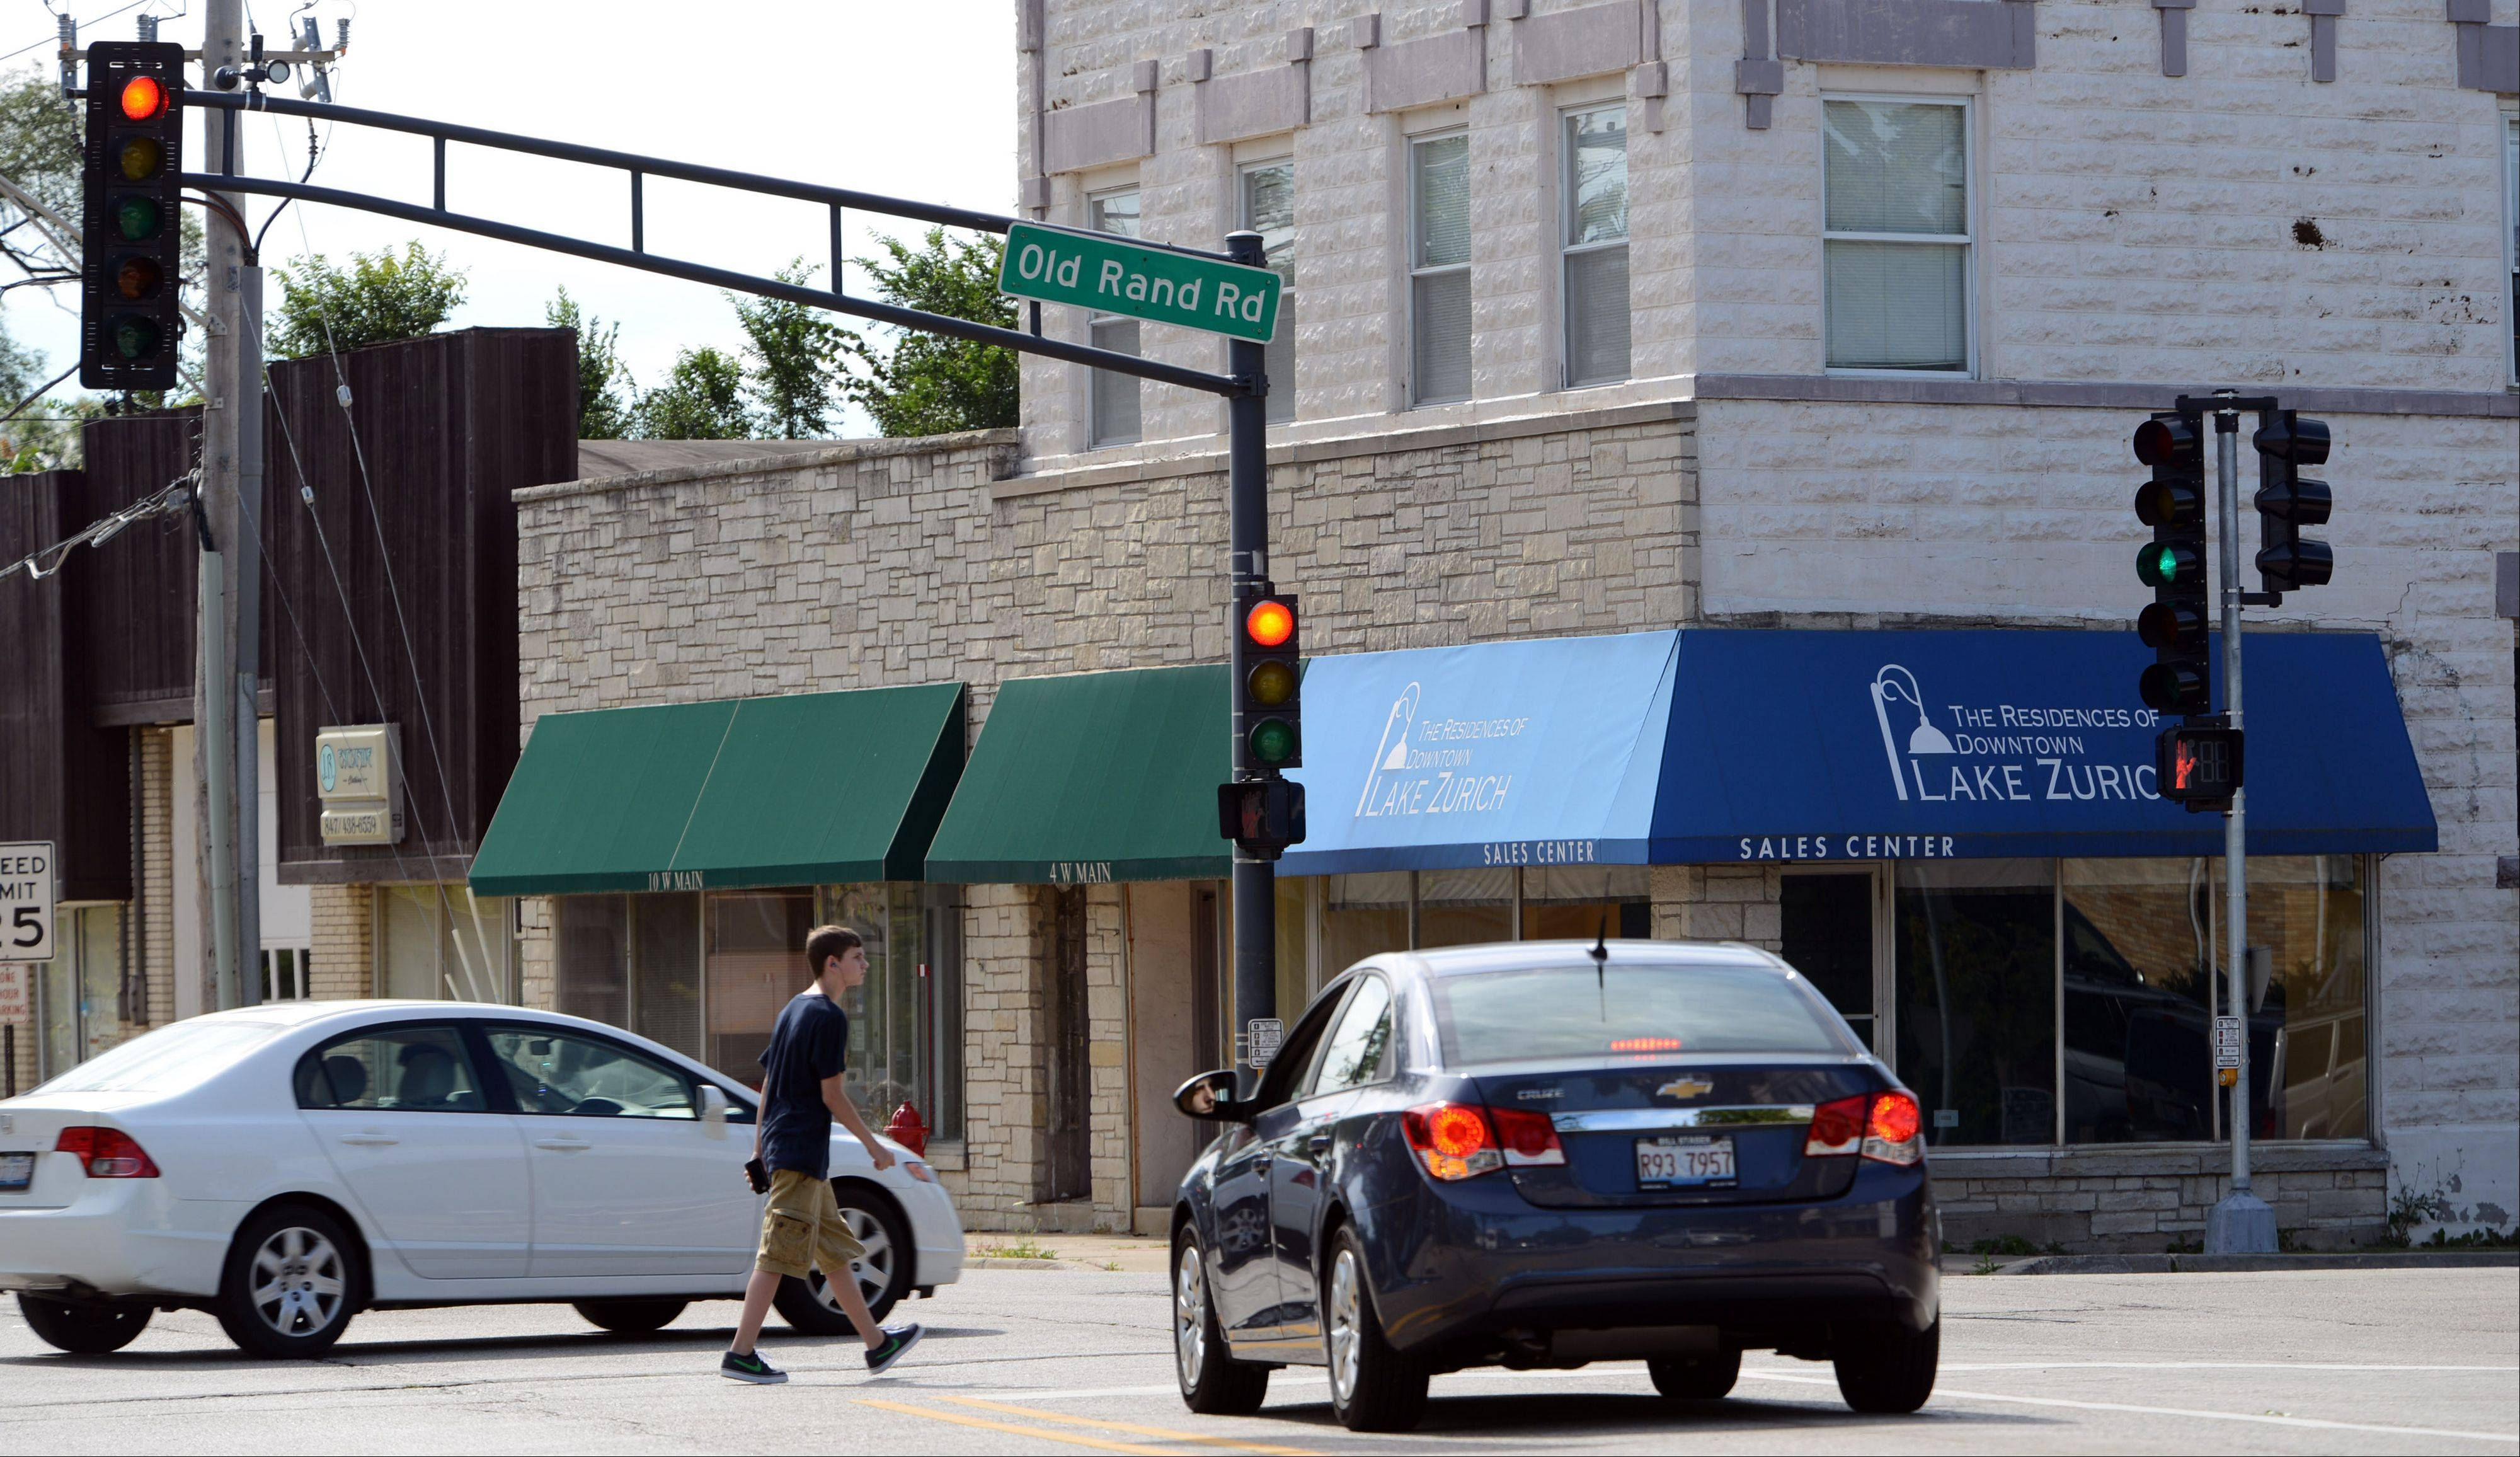 Lake Zurich village board members have approved spending nearly $116,000 to tear down five buildings as part of an effort to assist in downtown redevelopment including these buildings along West Main Street.